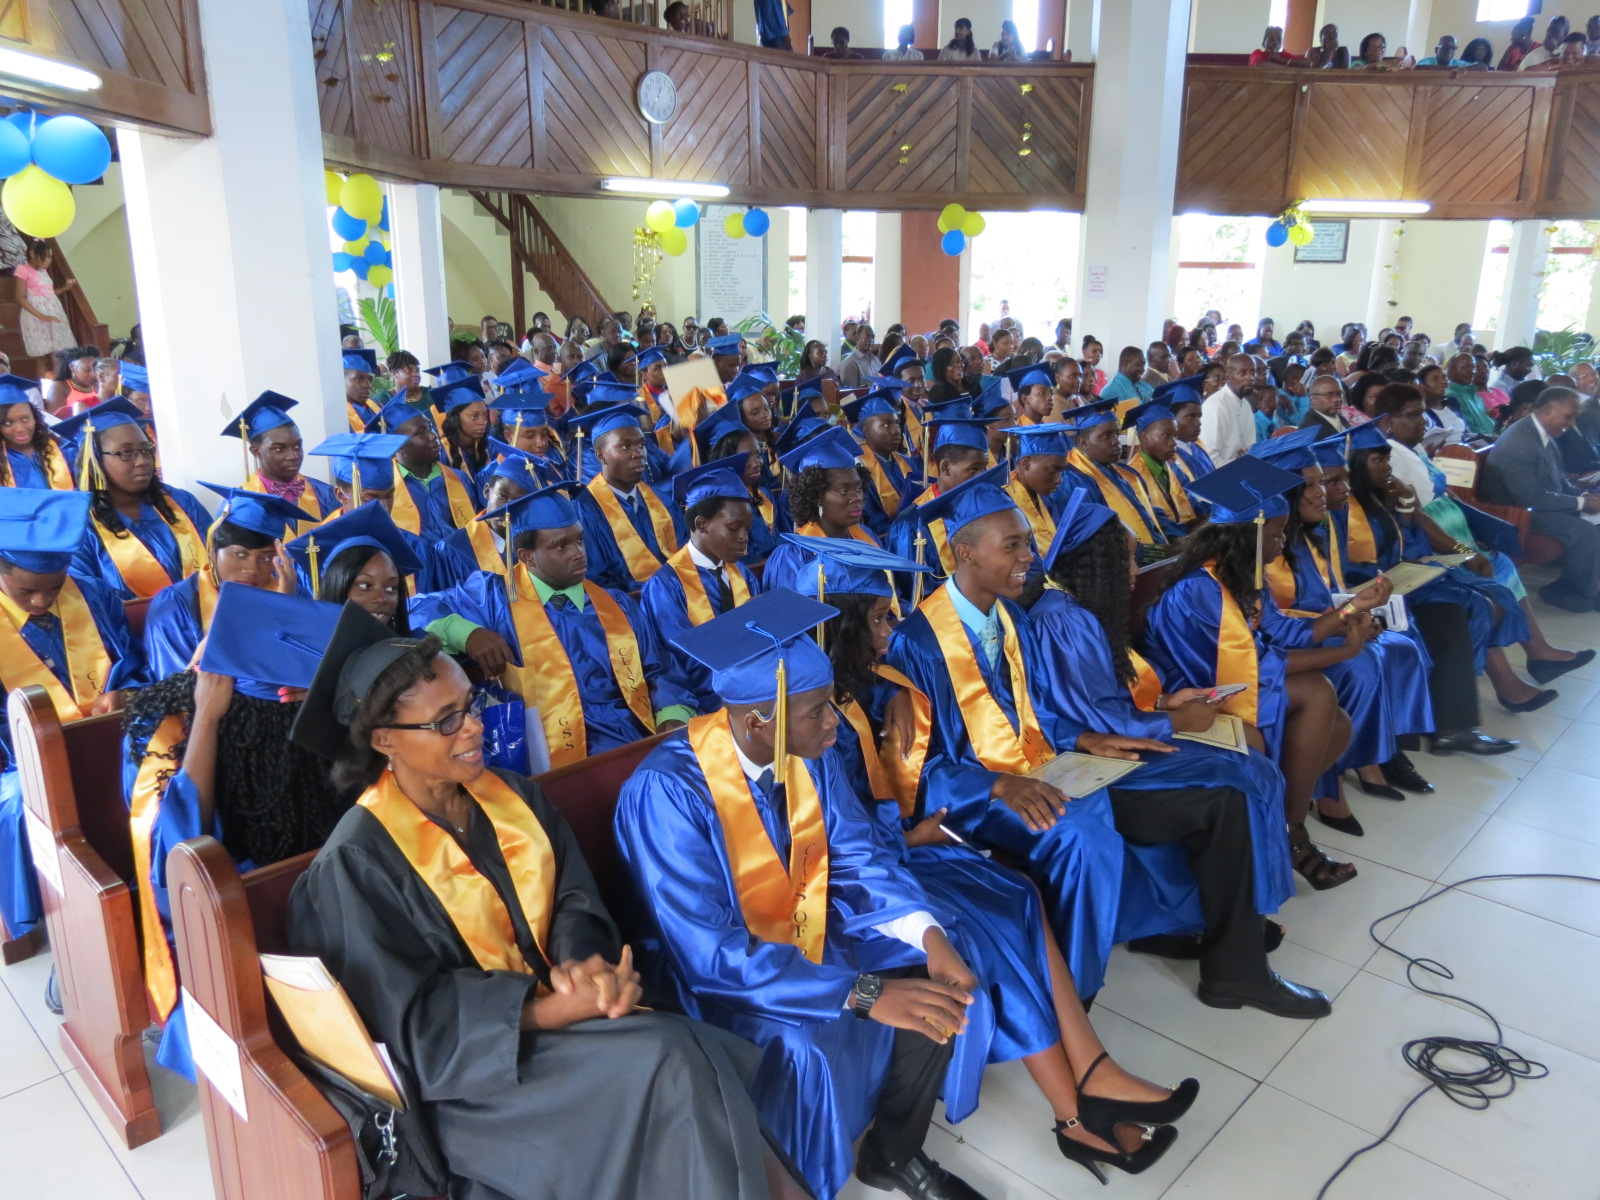 Graduands at the 42nd annual Graduation Ceremony of the Gingerland Secondary School at the Gingerland Methodist Church on November 12, 2015